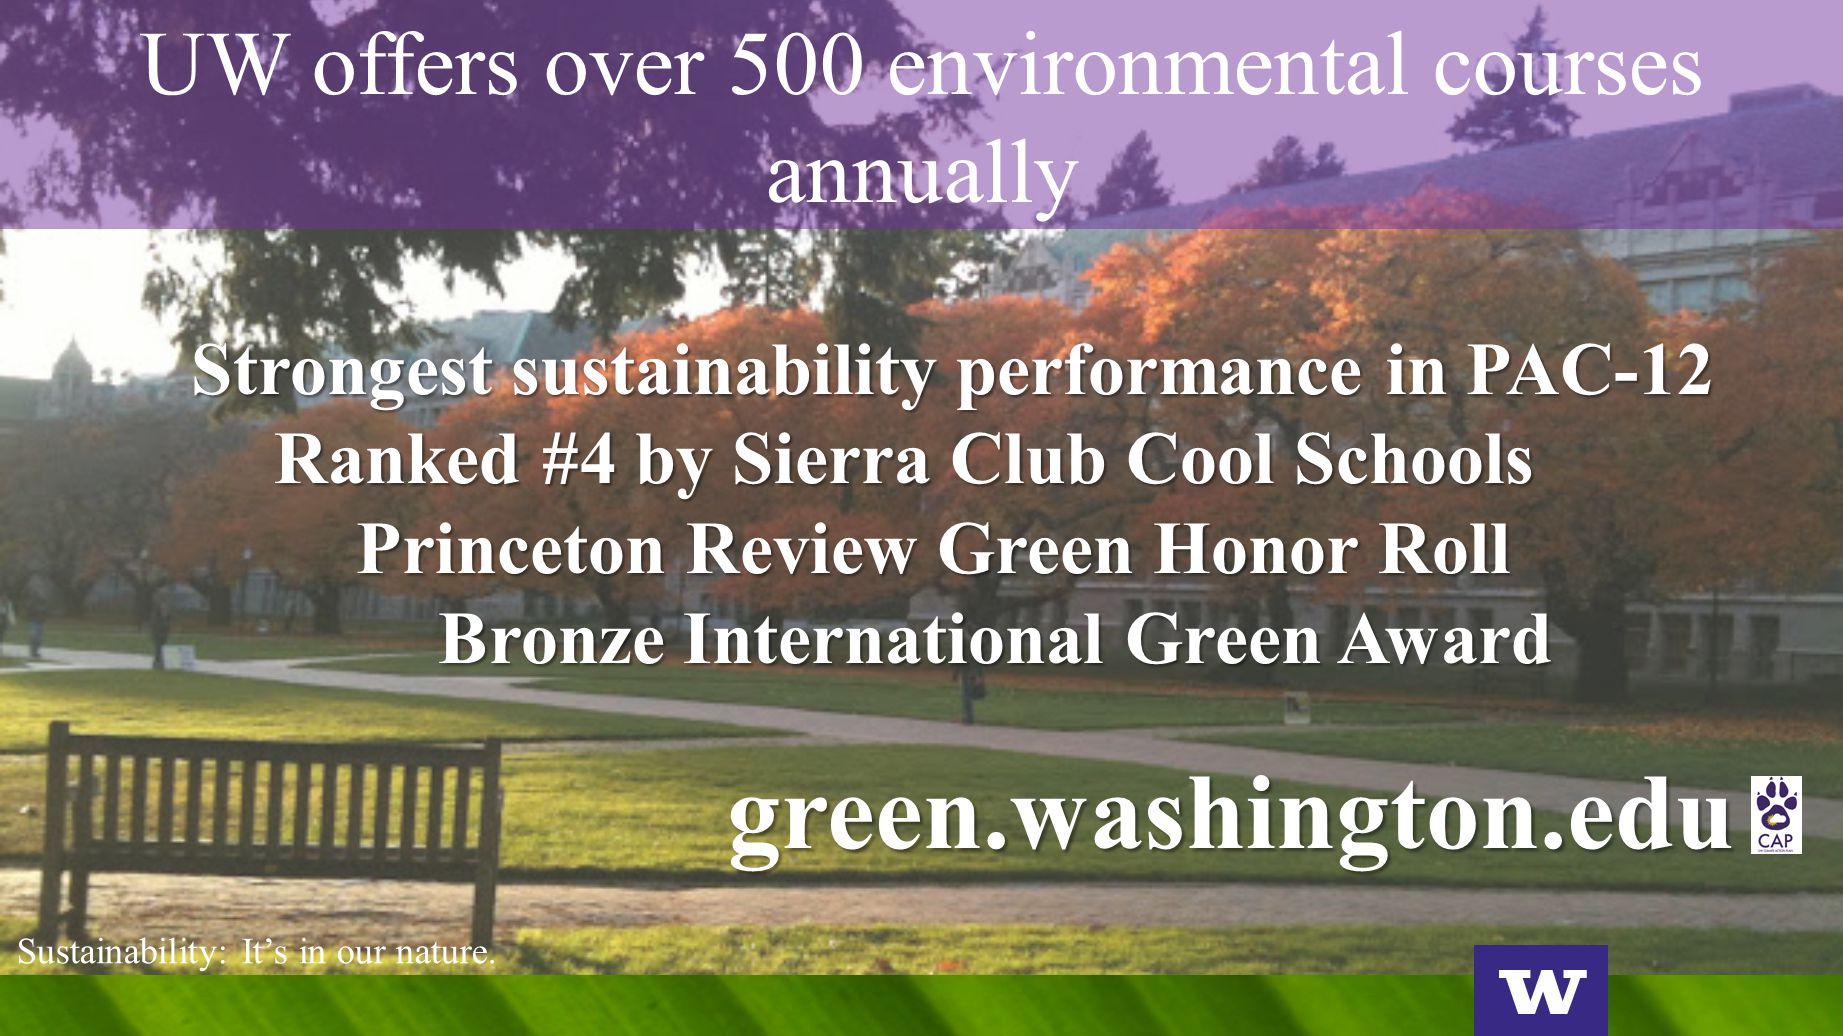 UW offers over 500 environmental courses annually Strongest sustainability performance in PAC-12 Ranked #4 by Sierra Club Cool Schools Princeton Review Green Honor Roll Bronze International Green Award green.washington.edu Sustainability: It's in our nature.